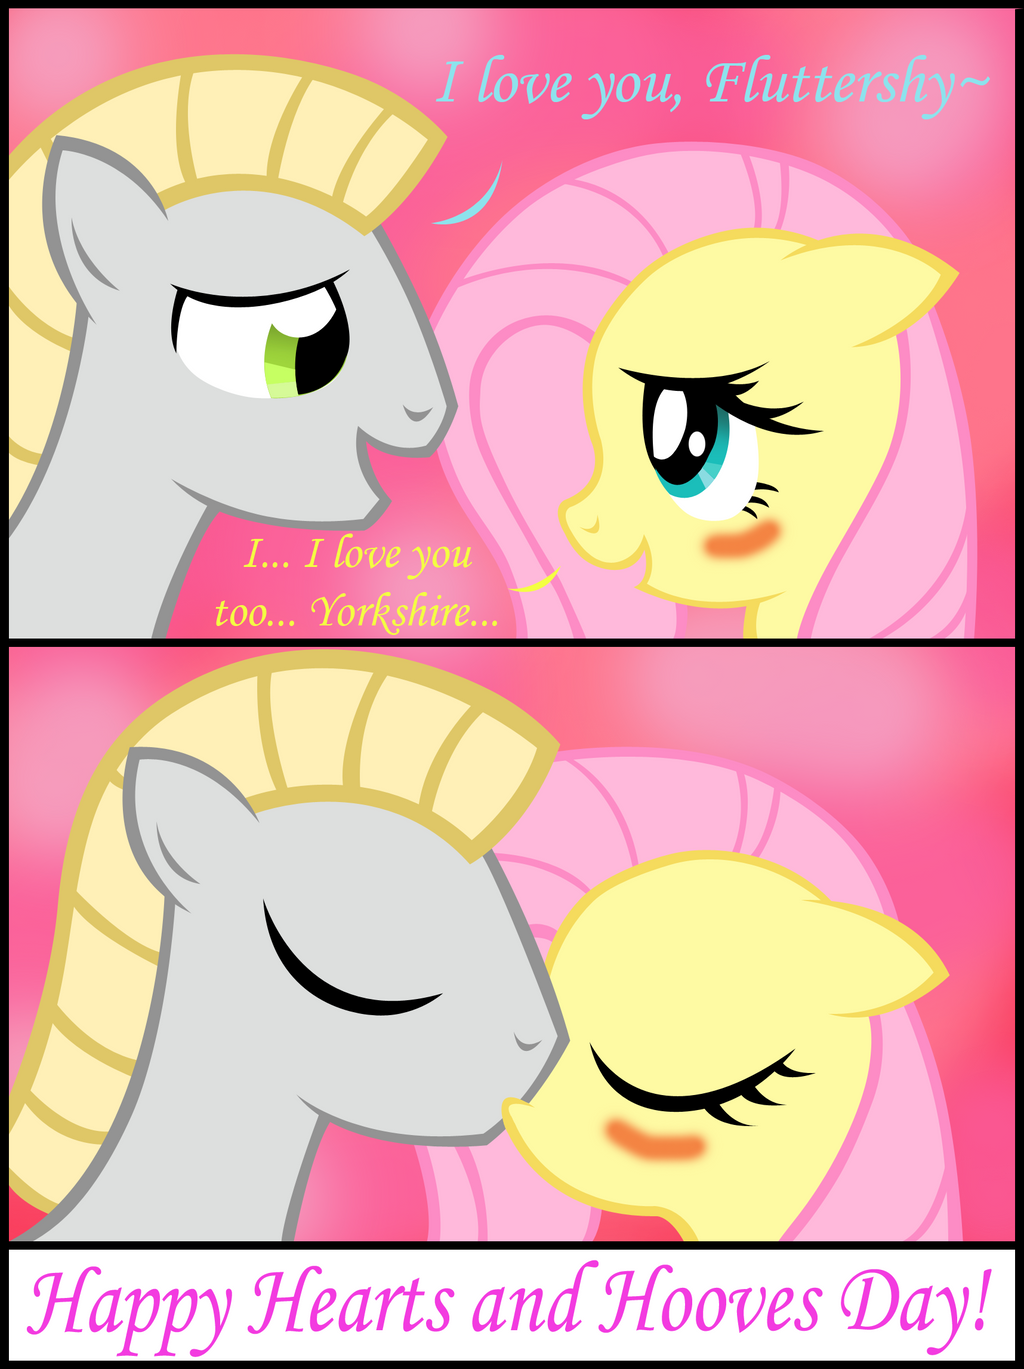 my little pony fluttershys boyfriend